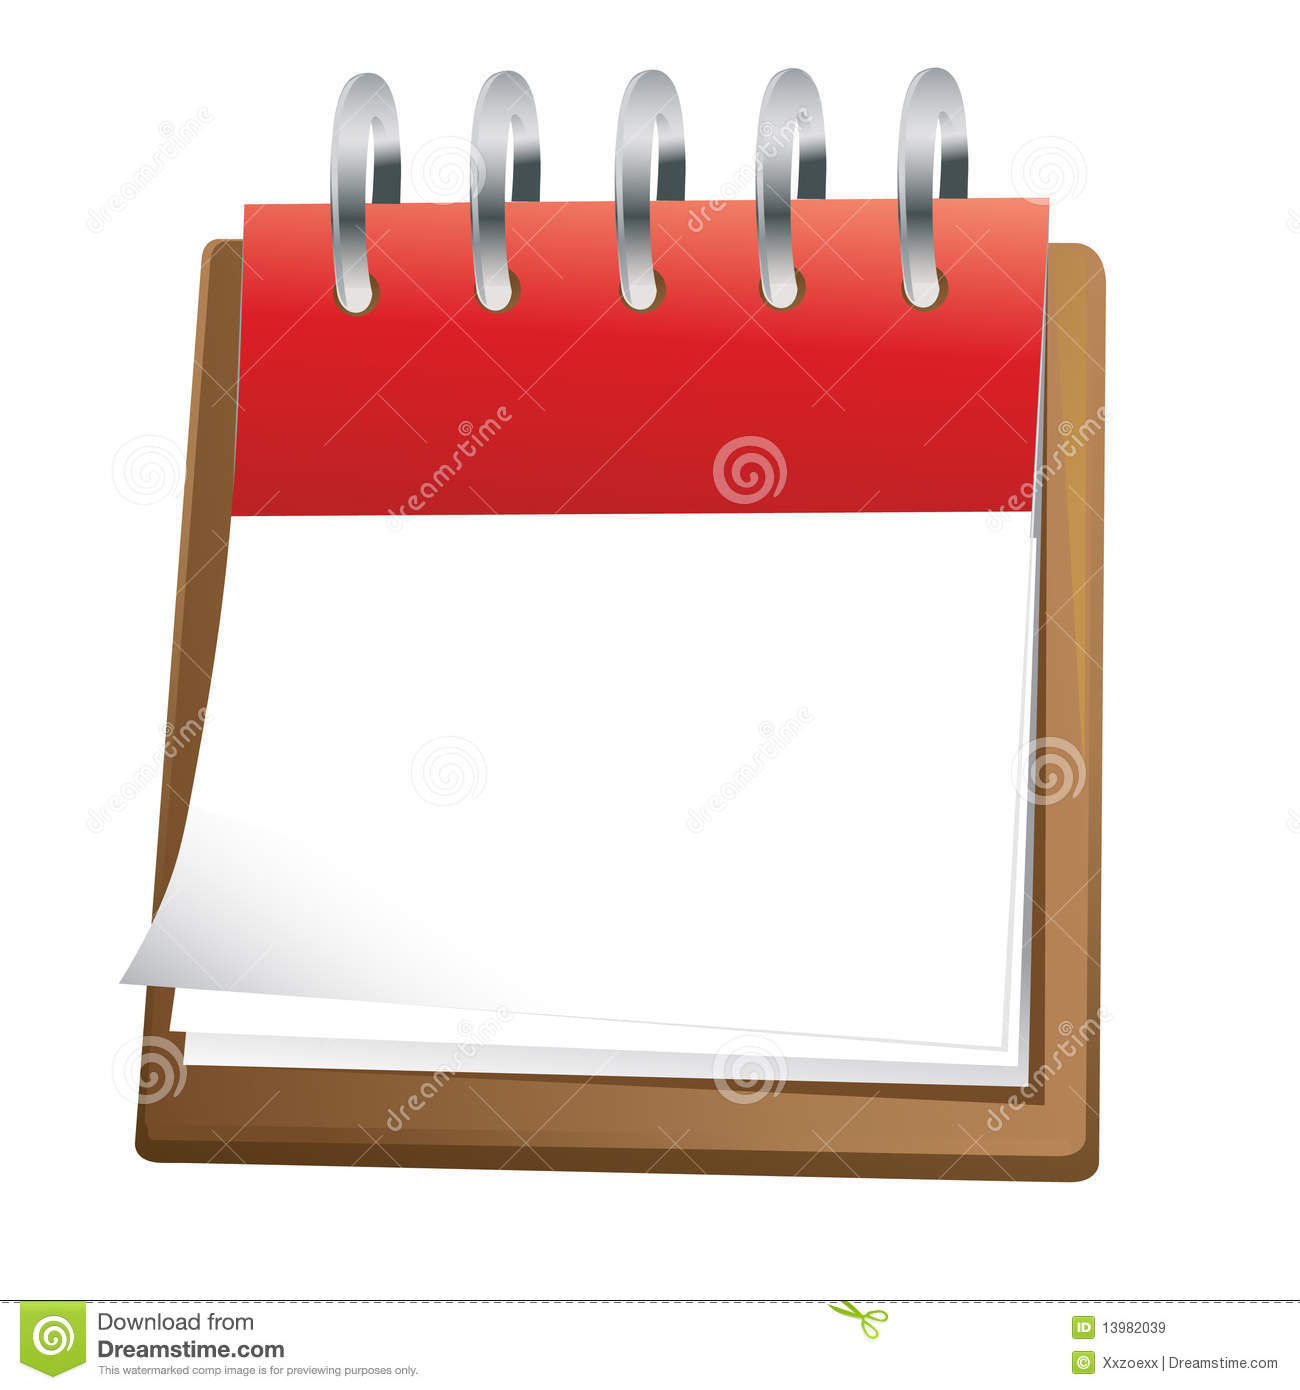 Blank Calendar Day Icon : Blank calendar clipart suggest